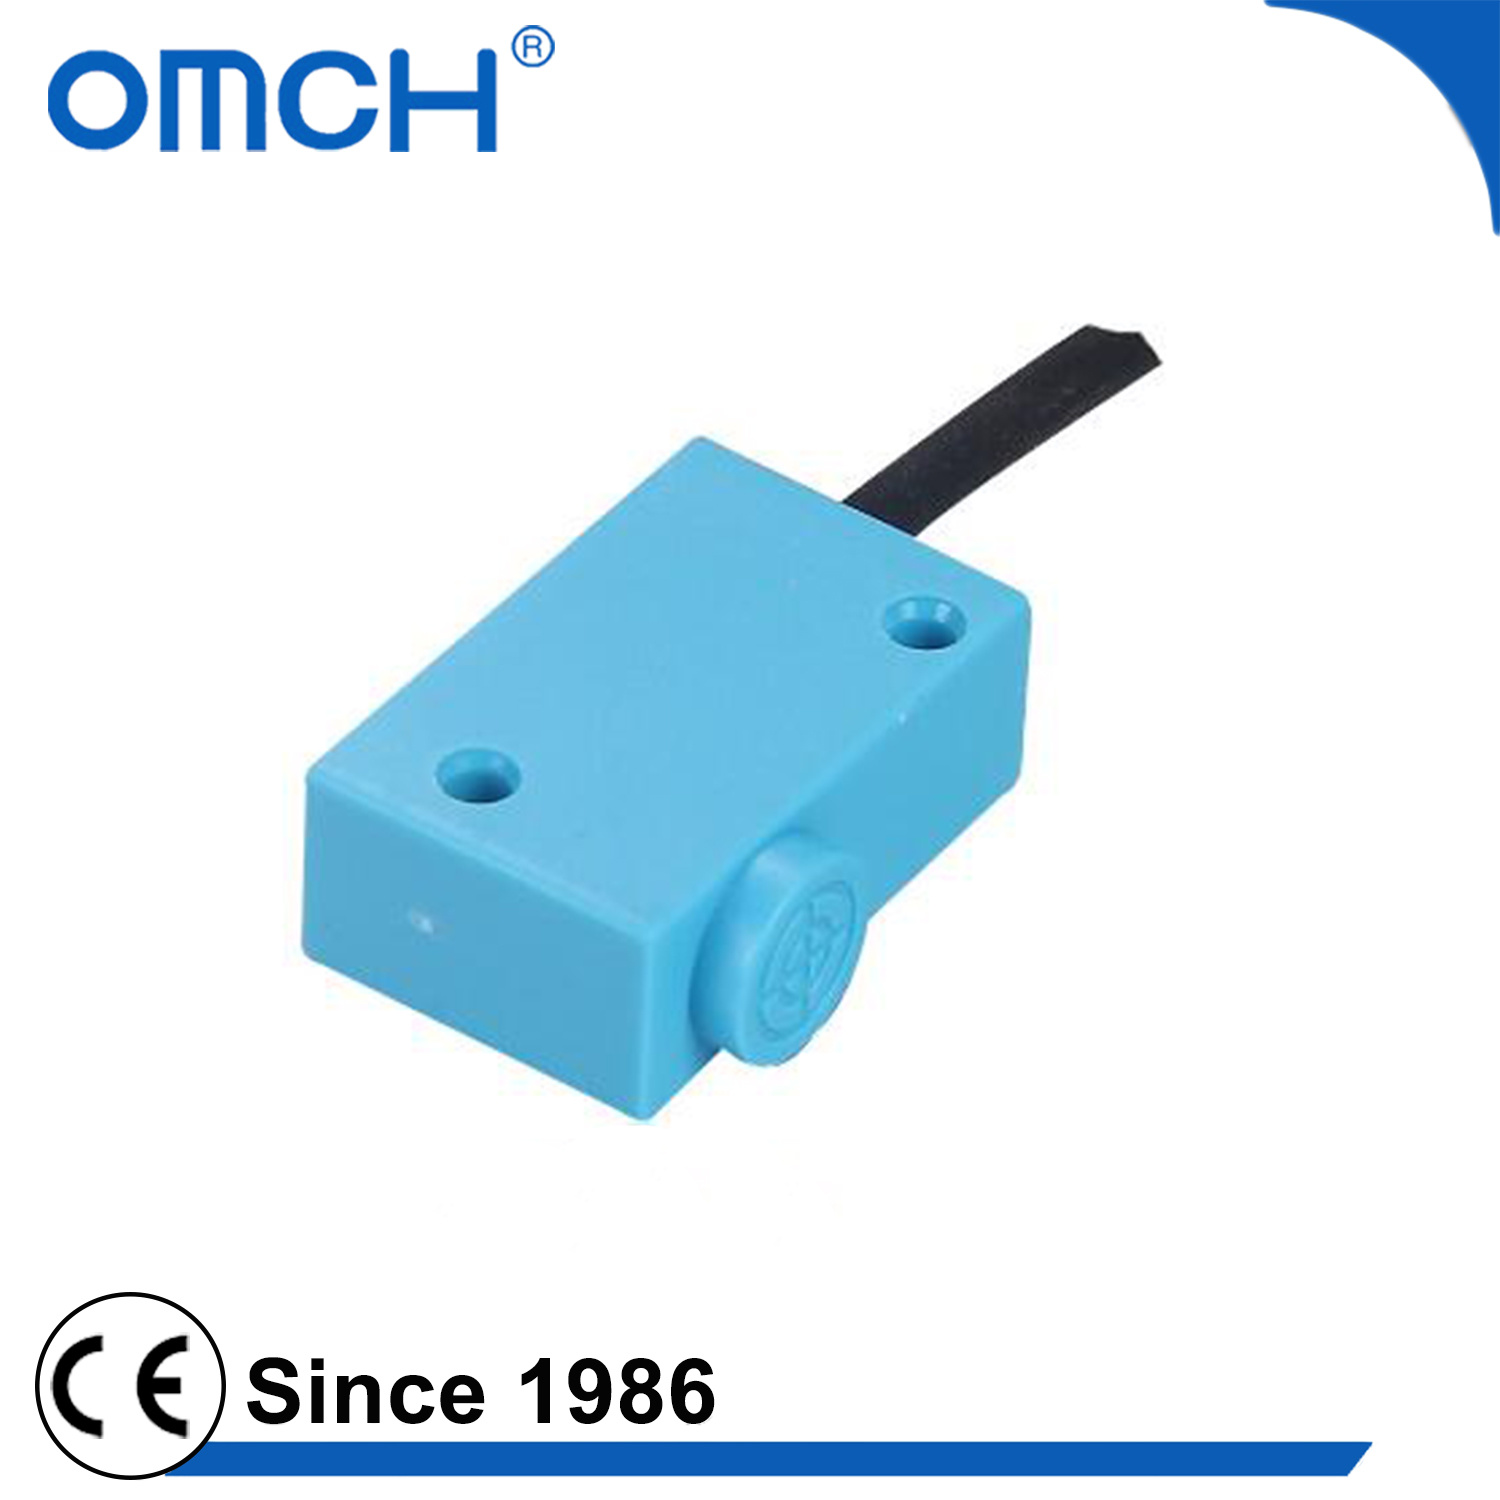 China Ljg5c-5 Series Square Inductive Proximity Switch Sensor ...